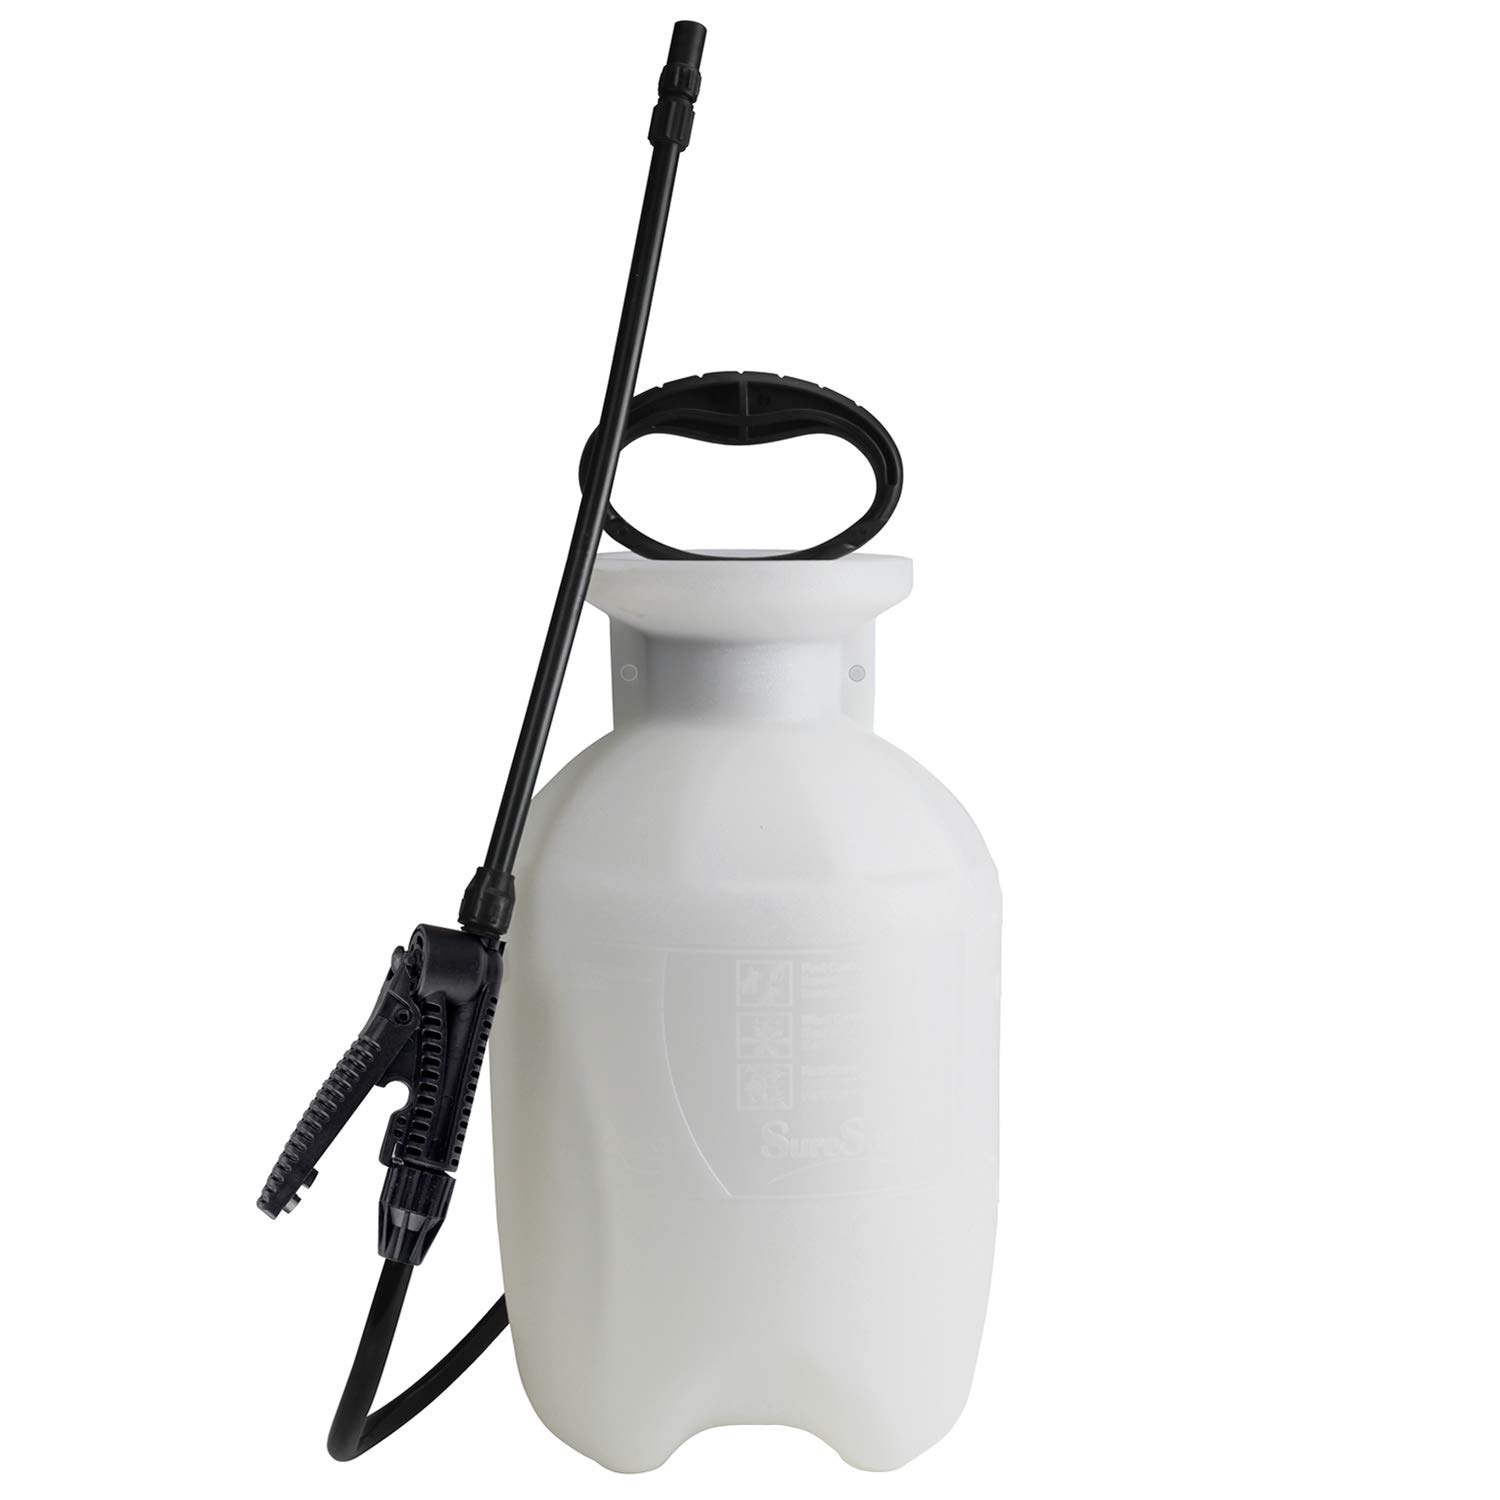 Chapin 20000 1-Gallon Lawn and Garden Sprayer product image